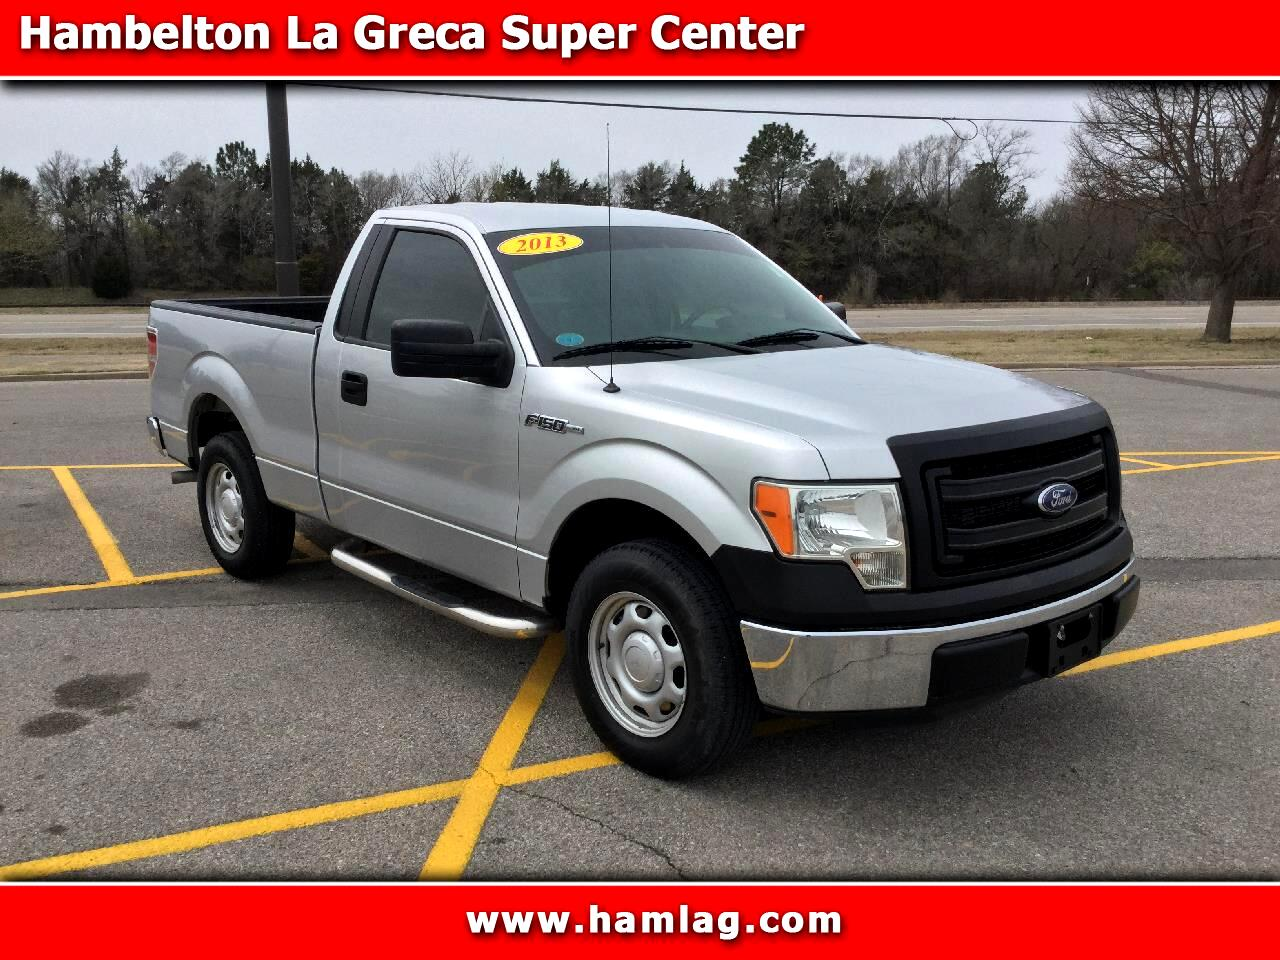 2013 Ford F-150 Red Cab XL